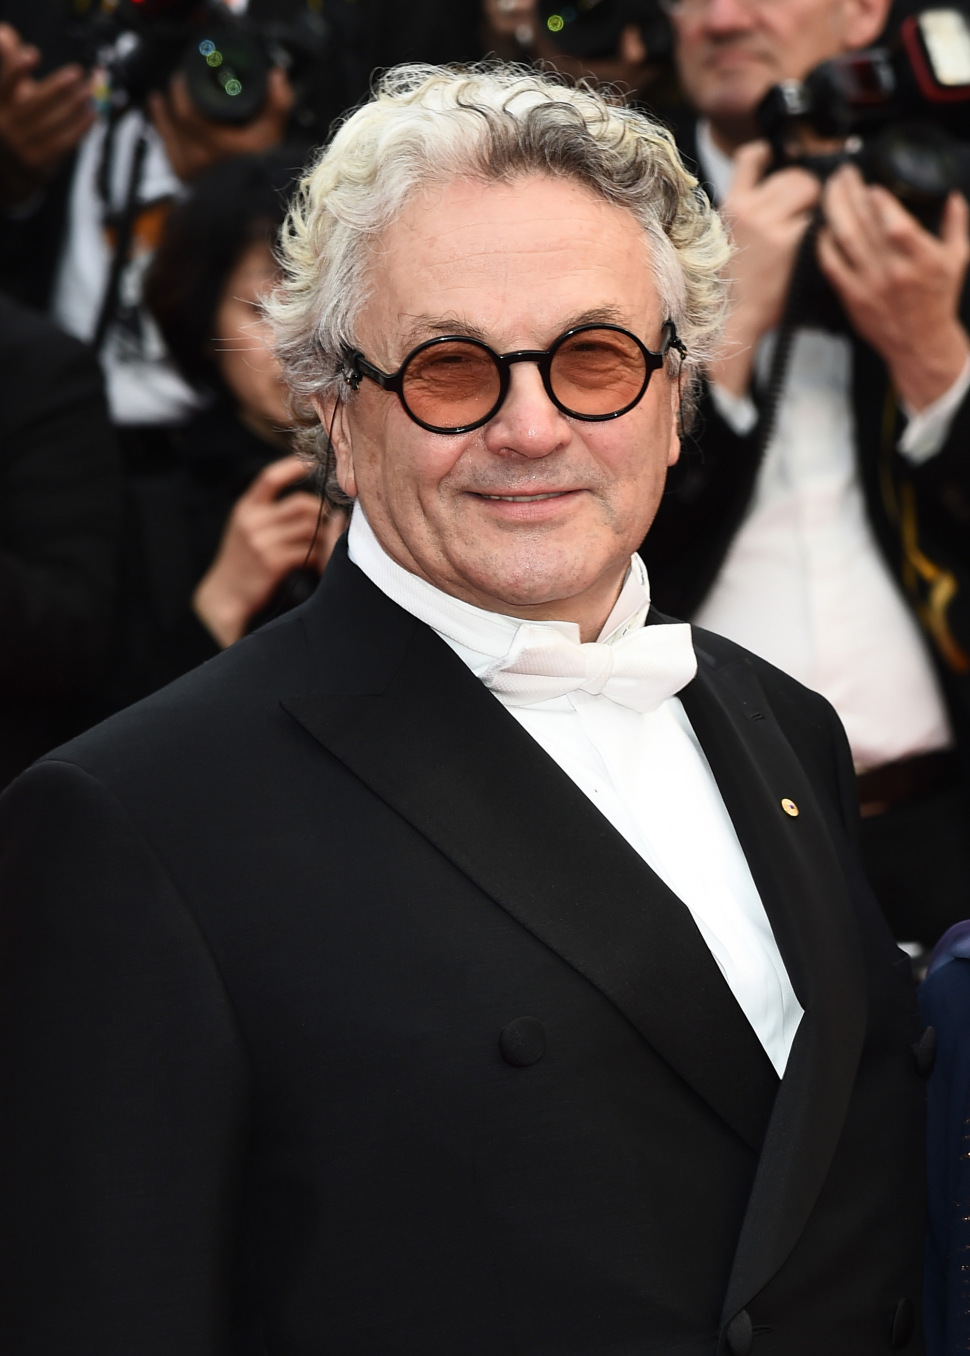 Mandatory Credit: Photo by Buckner/Variety/REX/Shutterstock (5682159ei) George Miller'Cafe Society' premiere and opening ceremony, 69th Cannes Film Festival, France - 11 May 2016